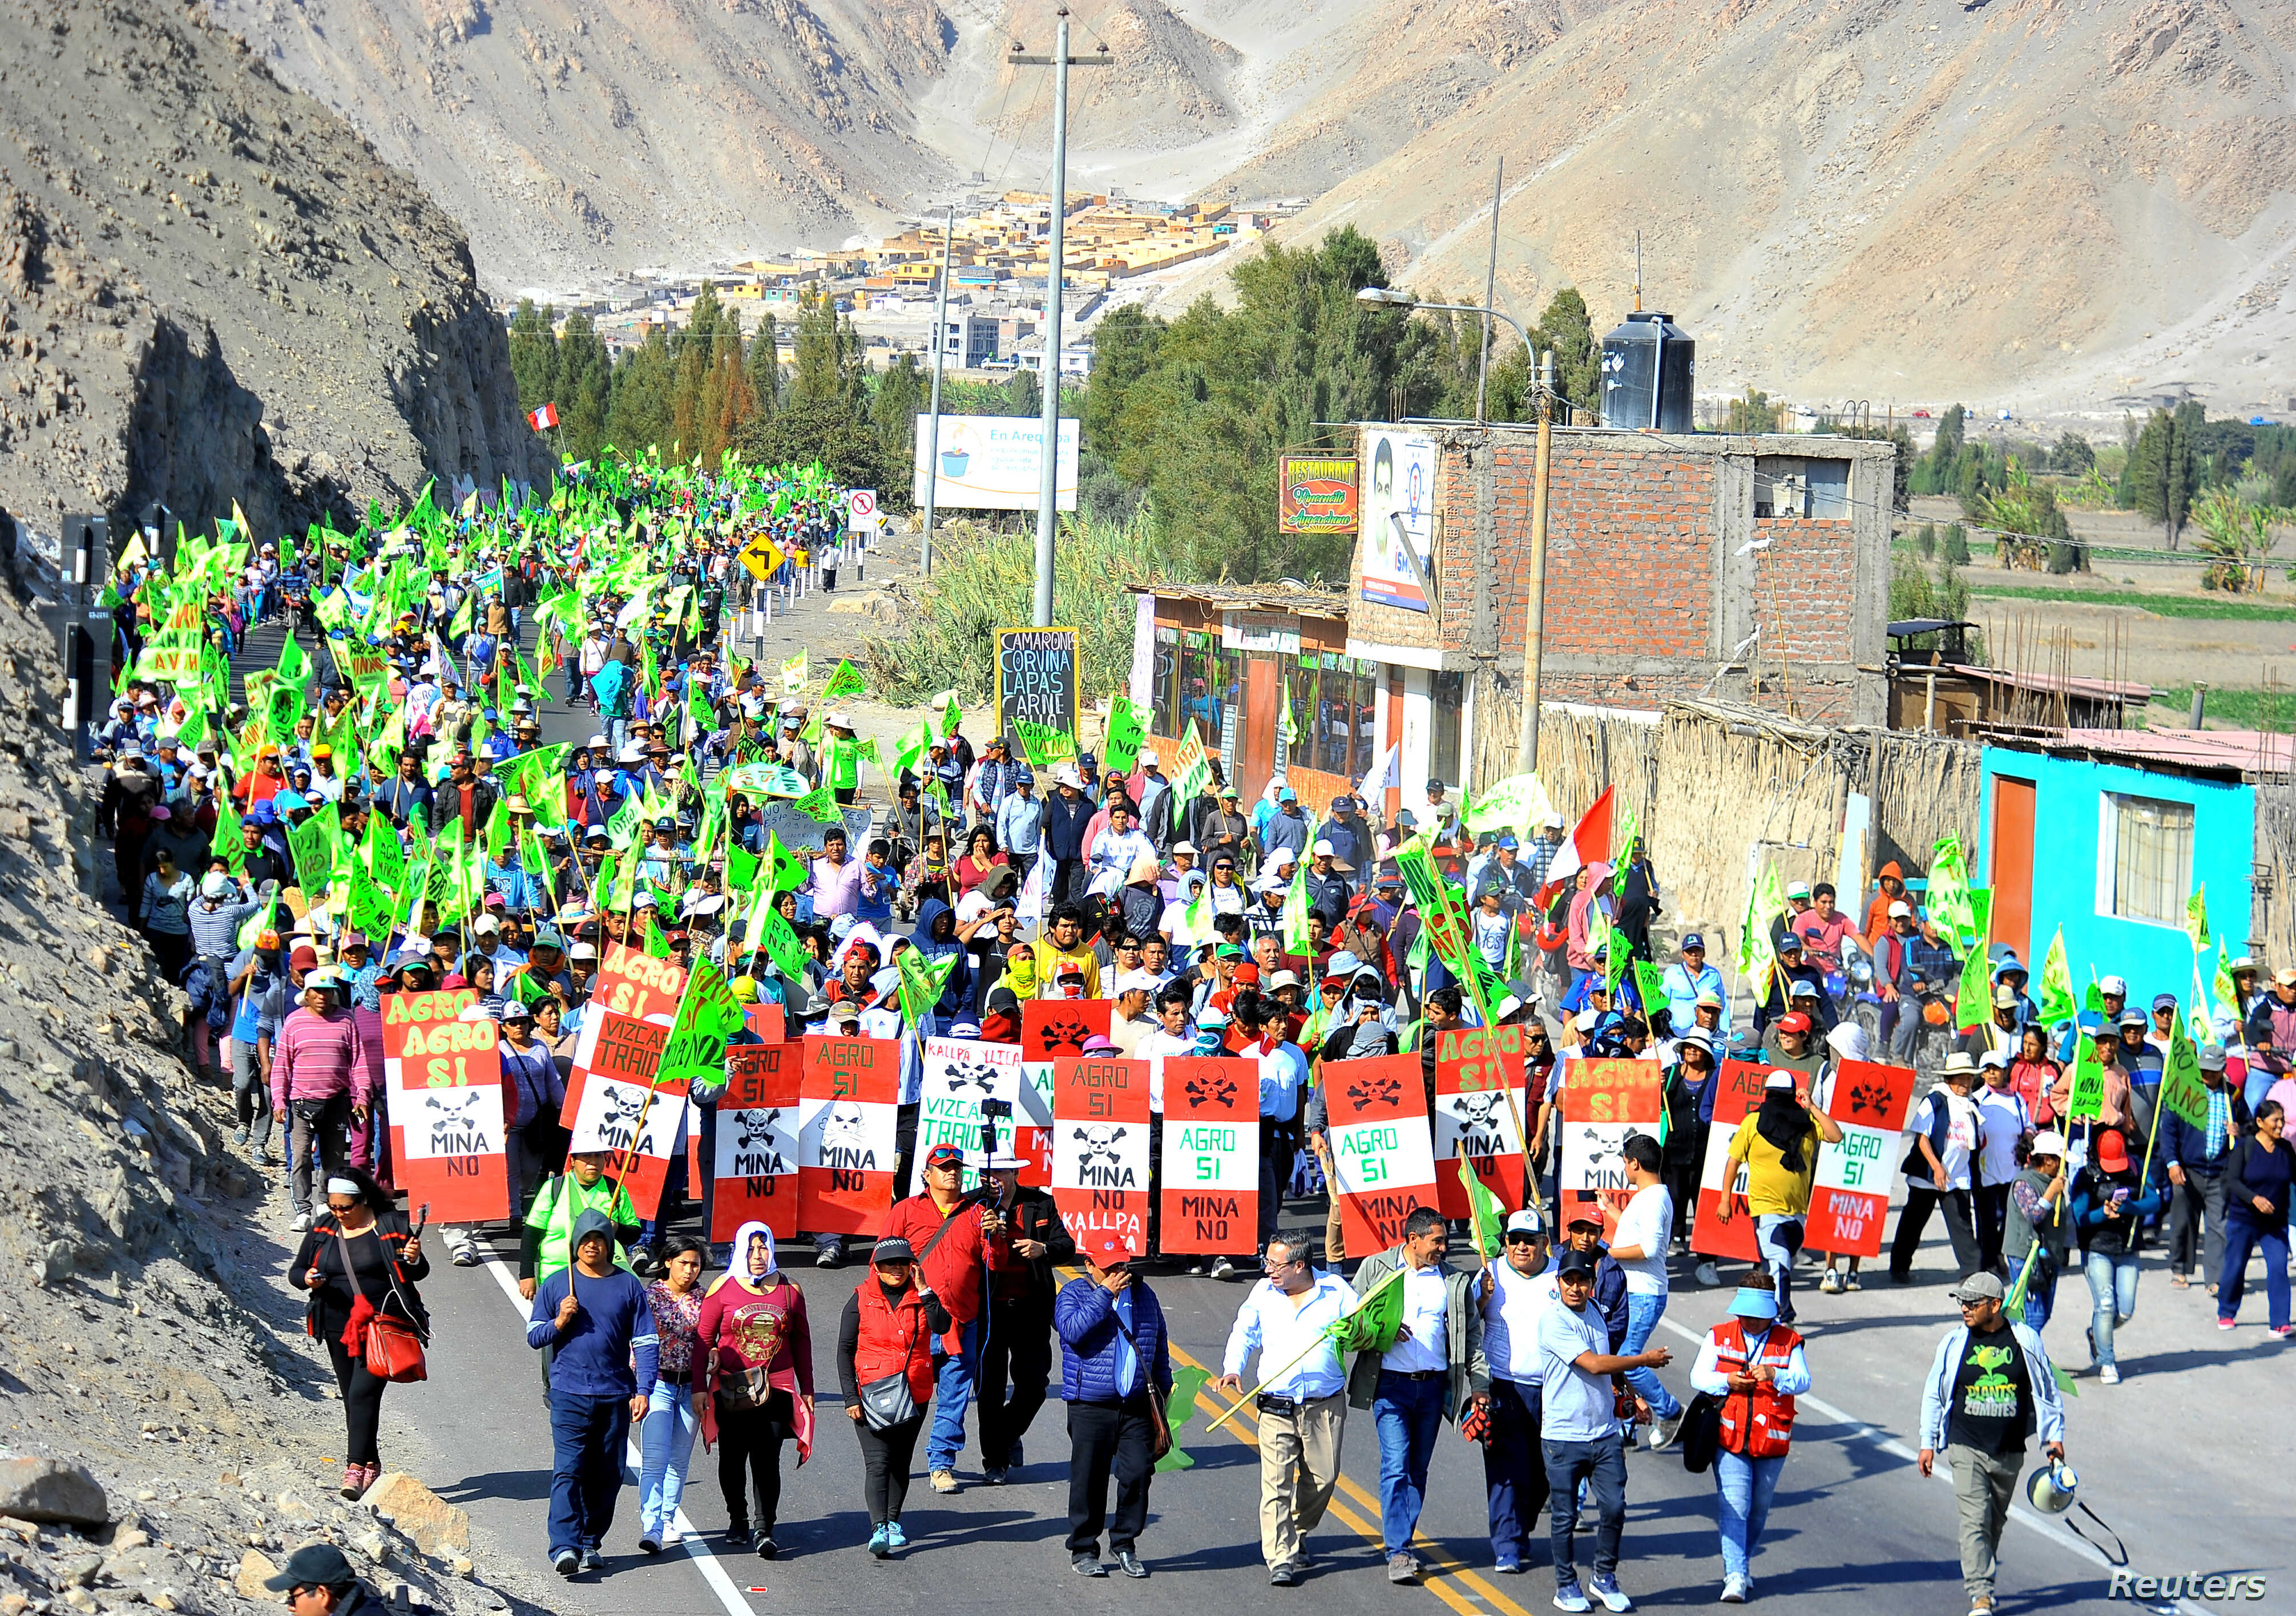 Demonstrators protest against Tia Maria mine in Arequipa, Peru, July 15, 2019.